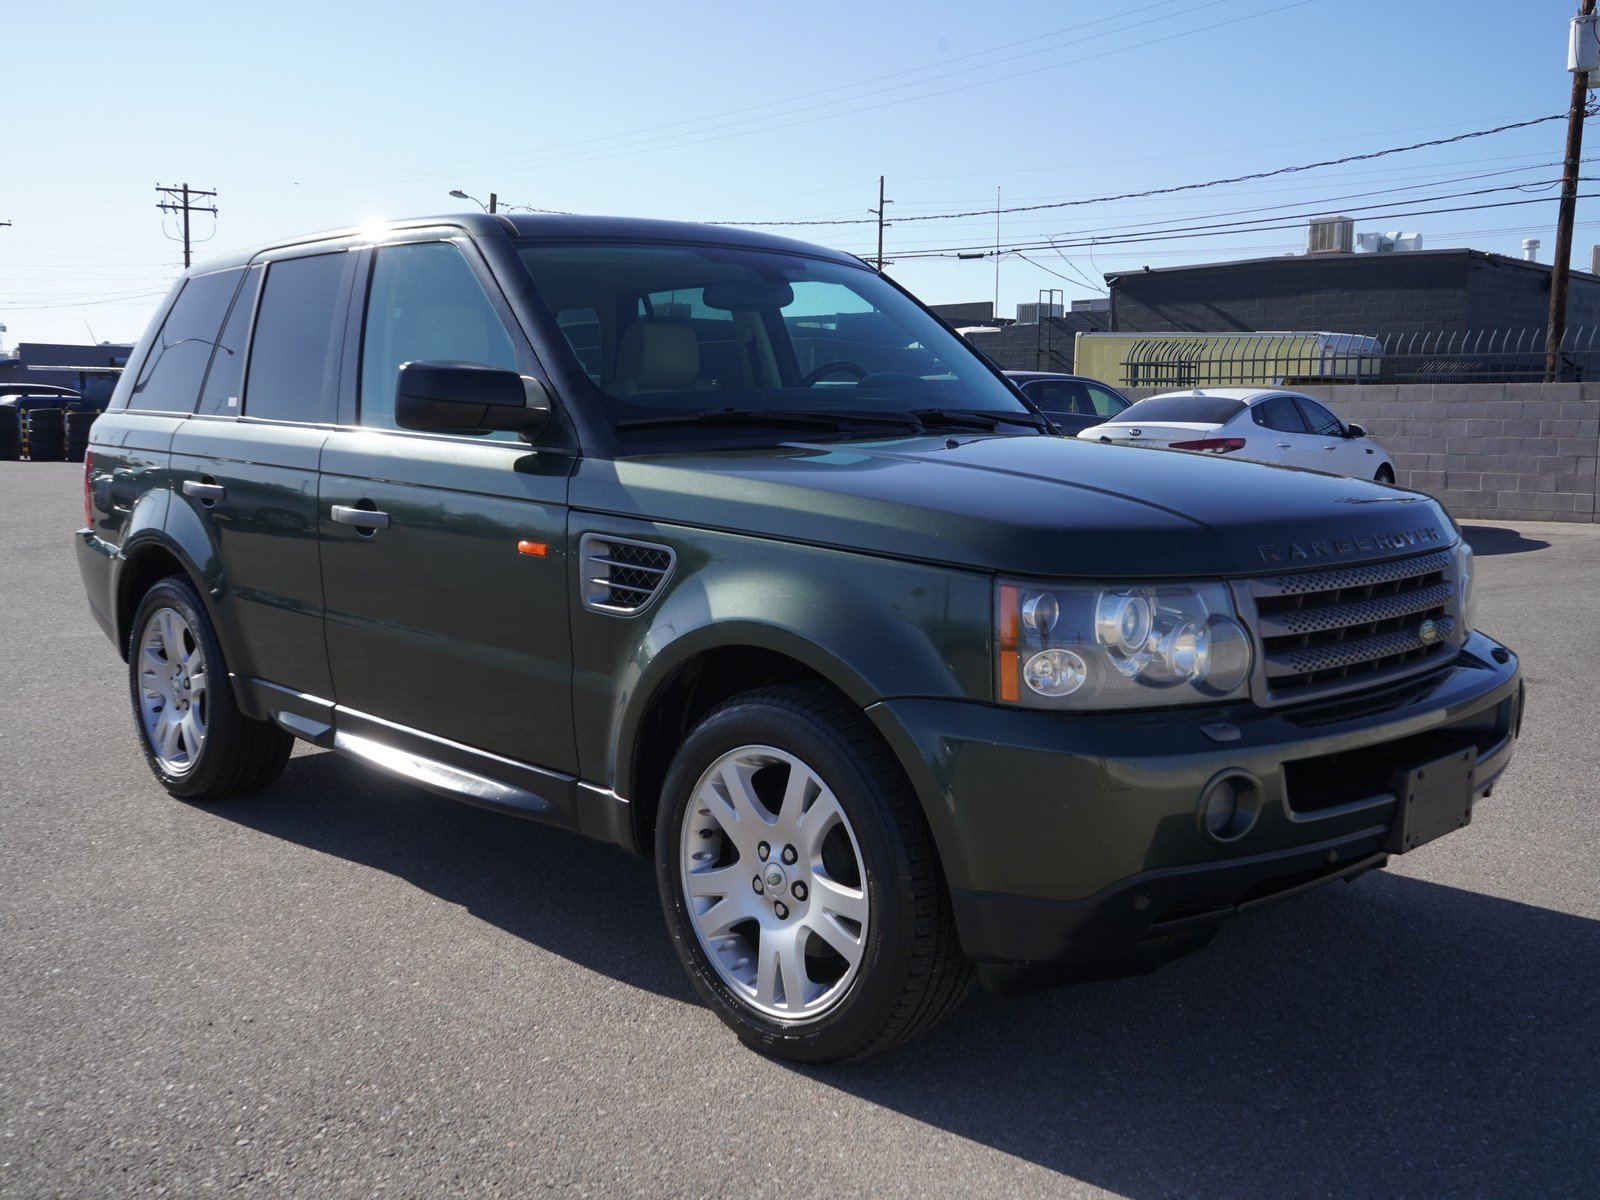 Pre-Owned 2006 Land Rover Range Rover Sport HSE